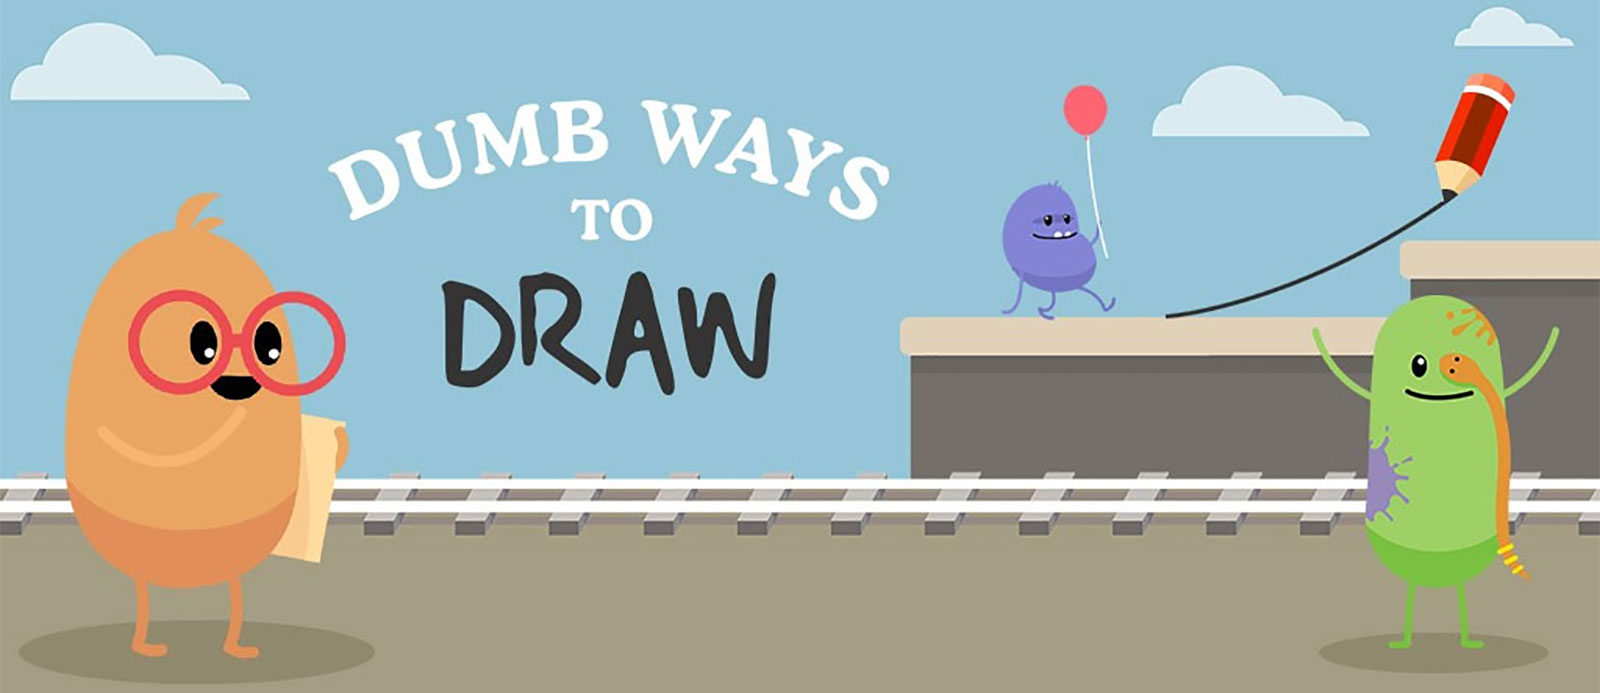 Dumb Ways To Draw Mod Apk